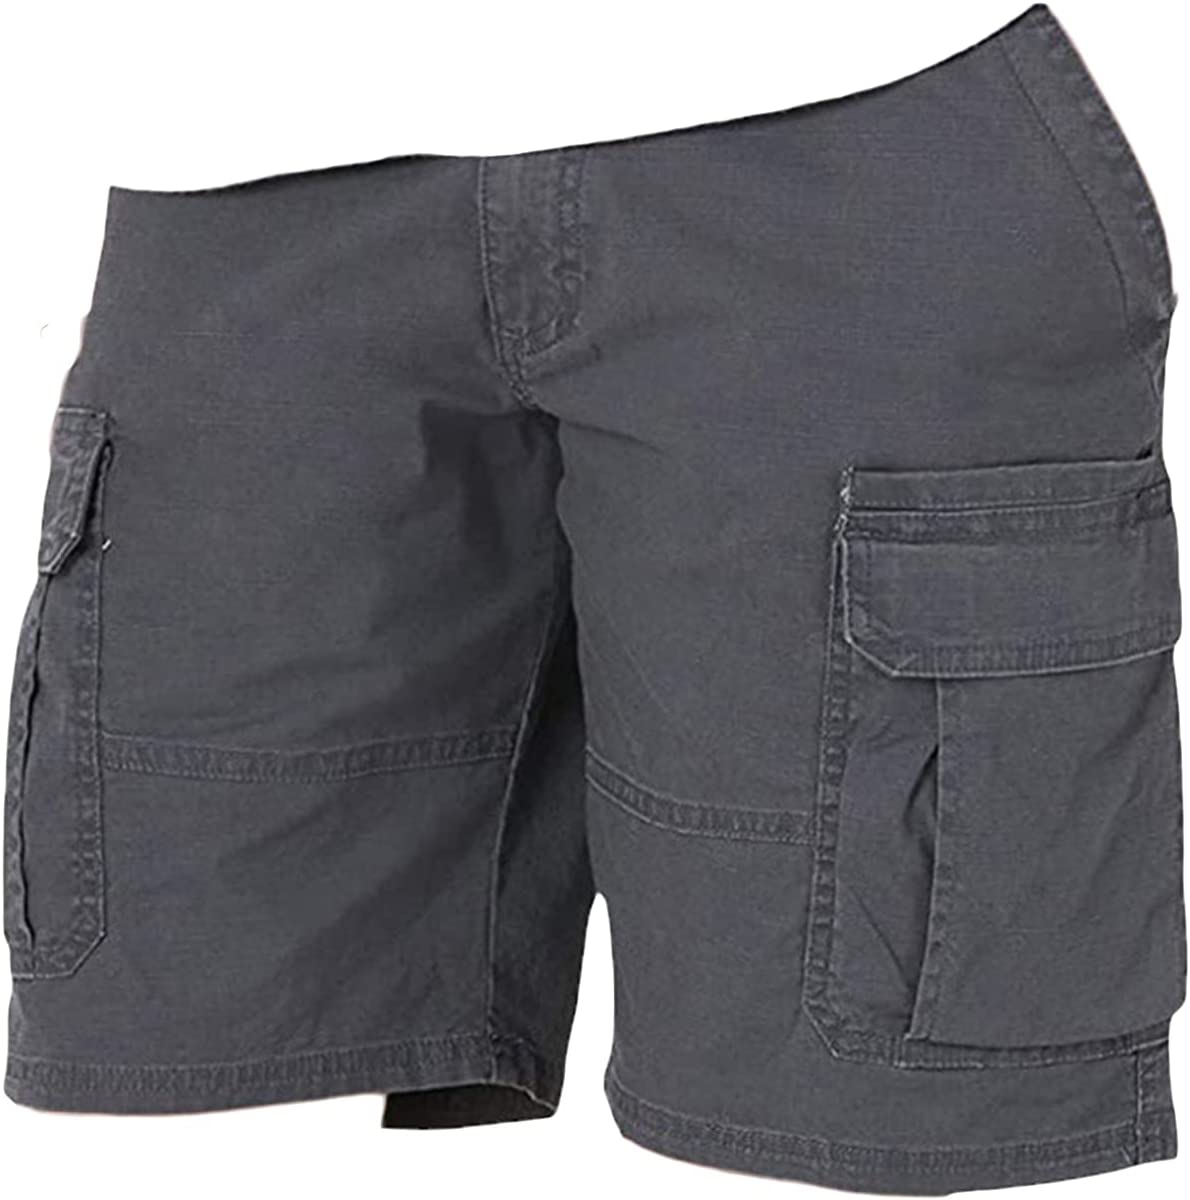 Men's Camo Relaxed Fit Cargo Short Multi-Pockets Premium Twill Shorts Casual Outdoor Ripstop Hiking Work Short Pant (Grey1,5X-Large)